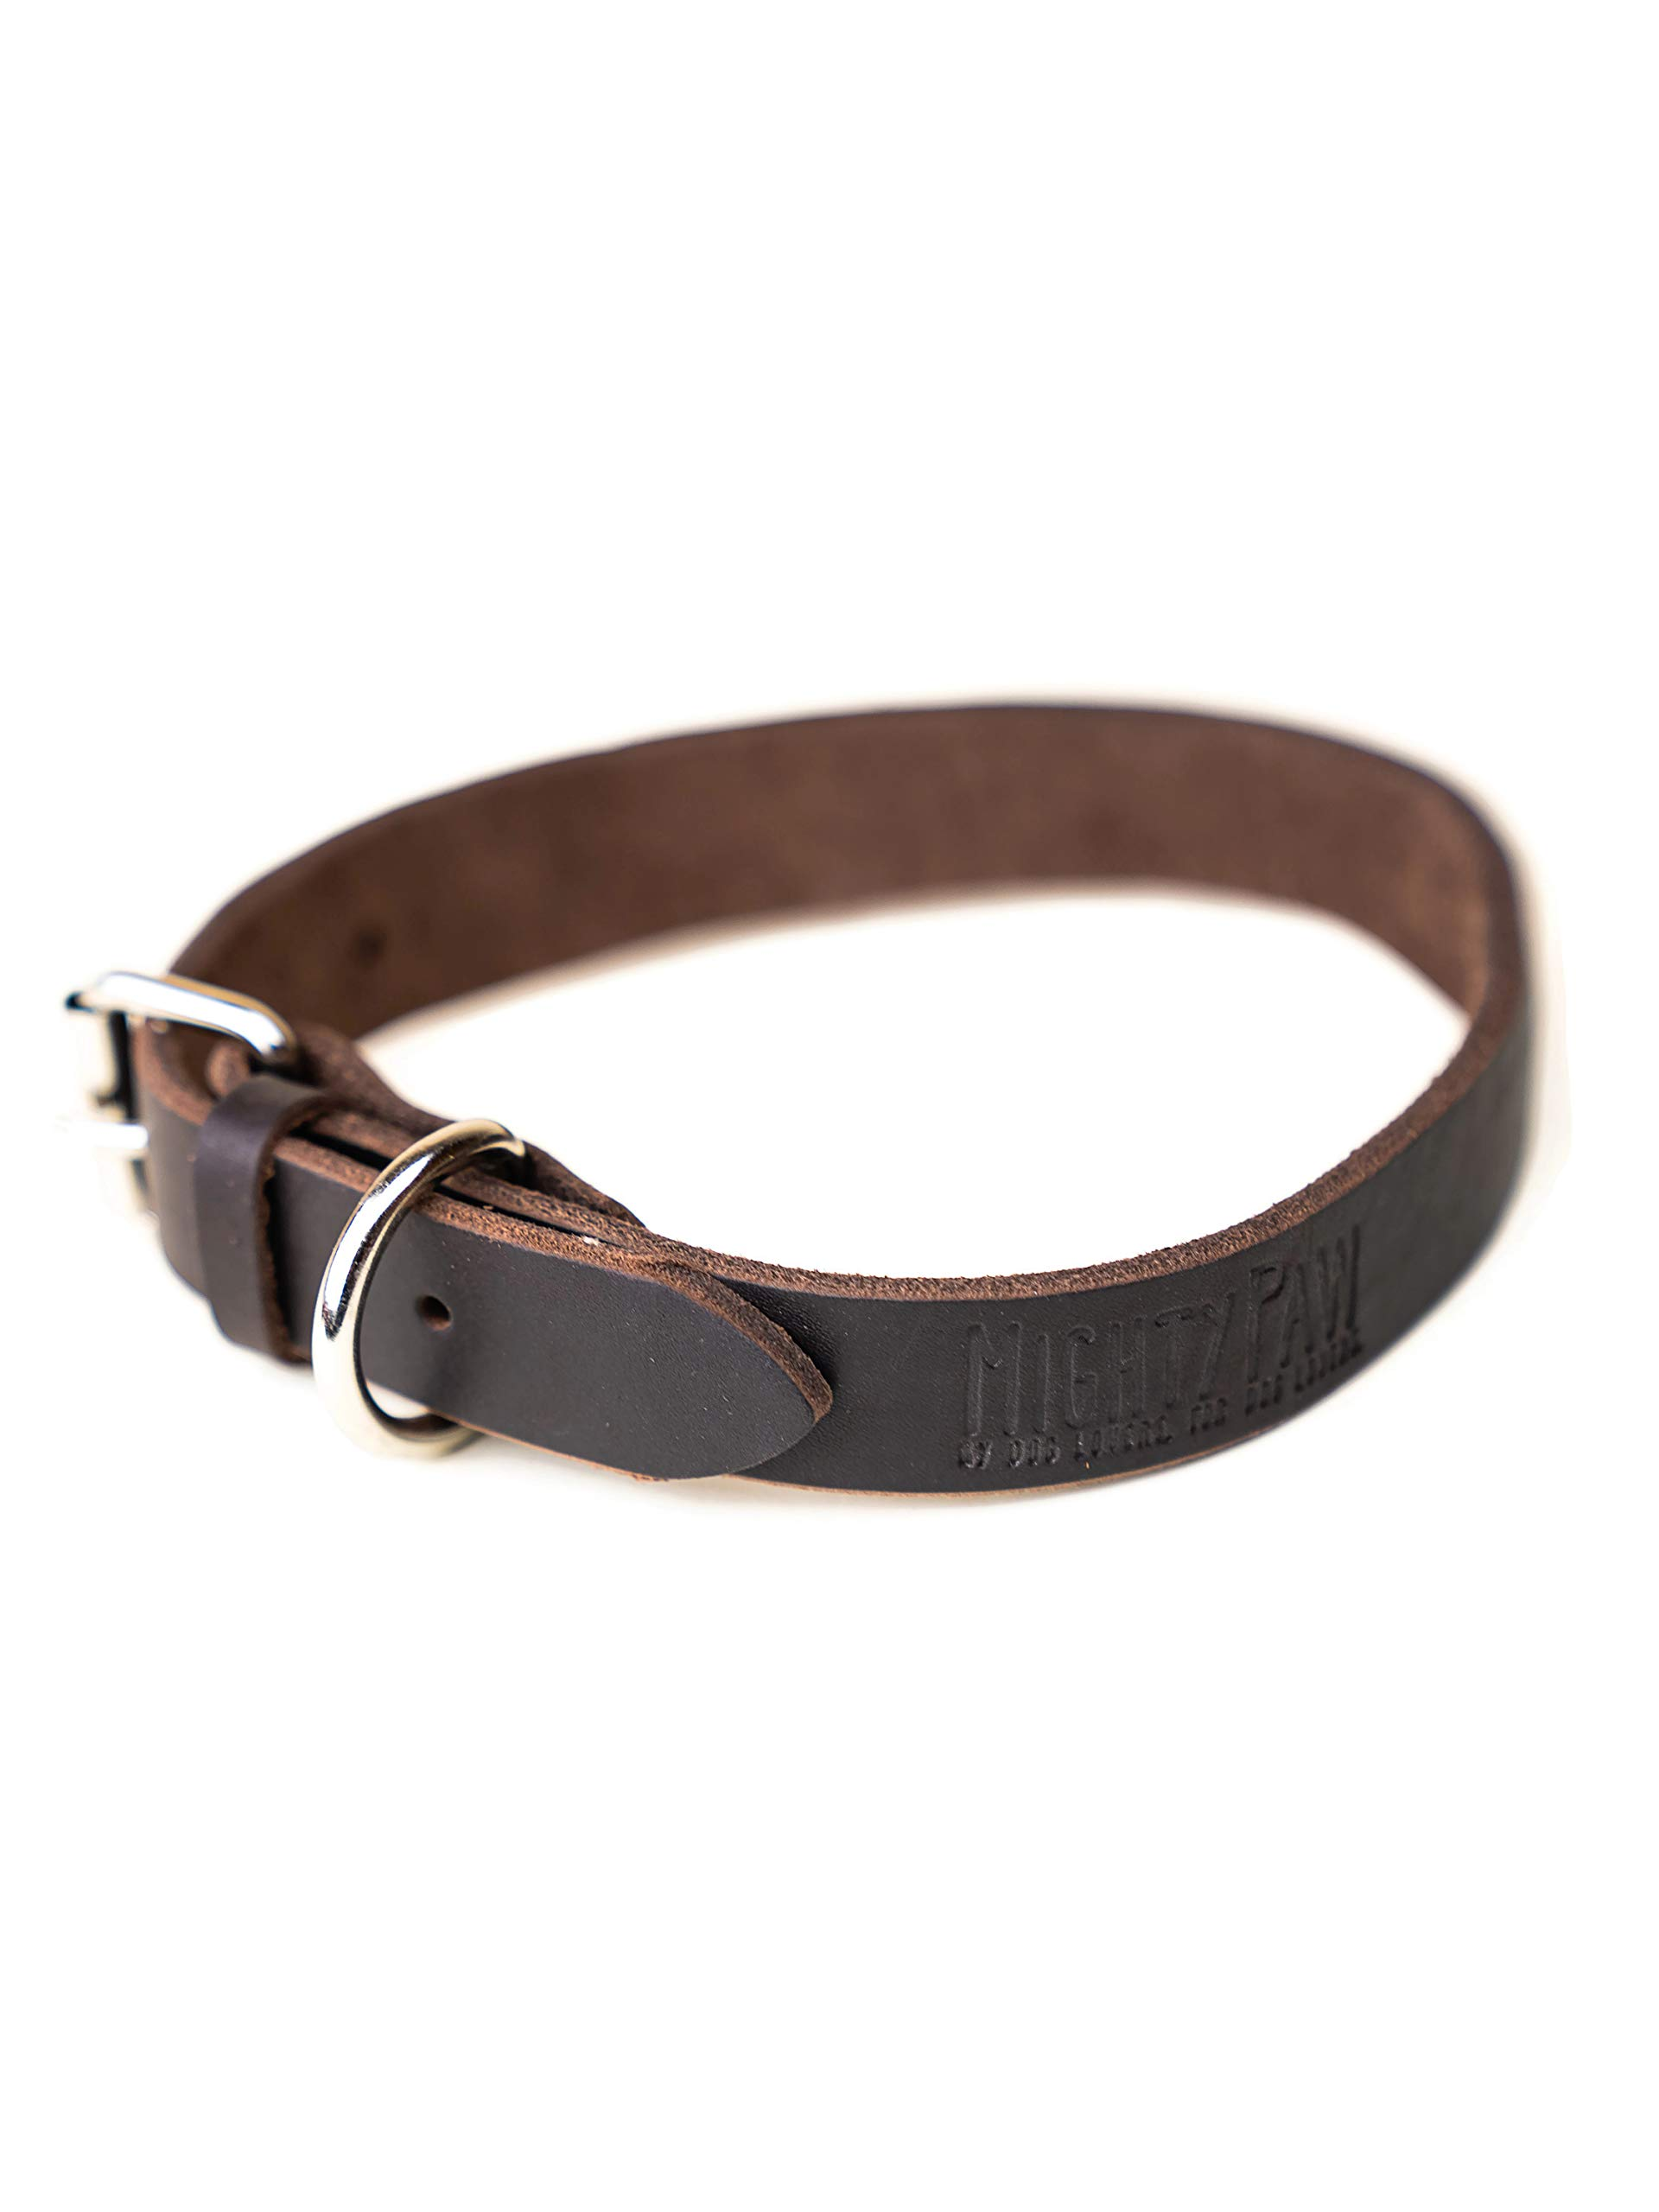 Mighty Paw Leather Dog Collar, Super Soft Distressed Leather- Premium Quality, Modern Stylish Look by Mighty Paw